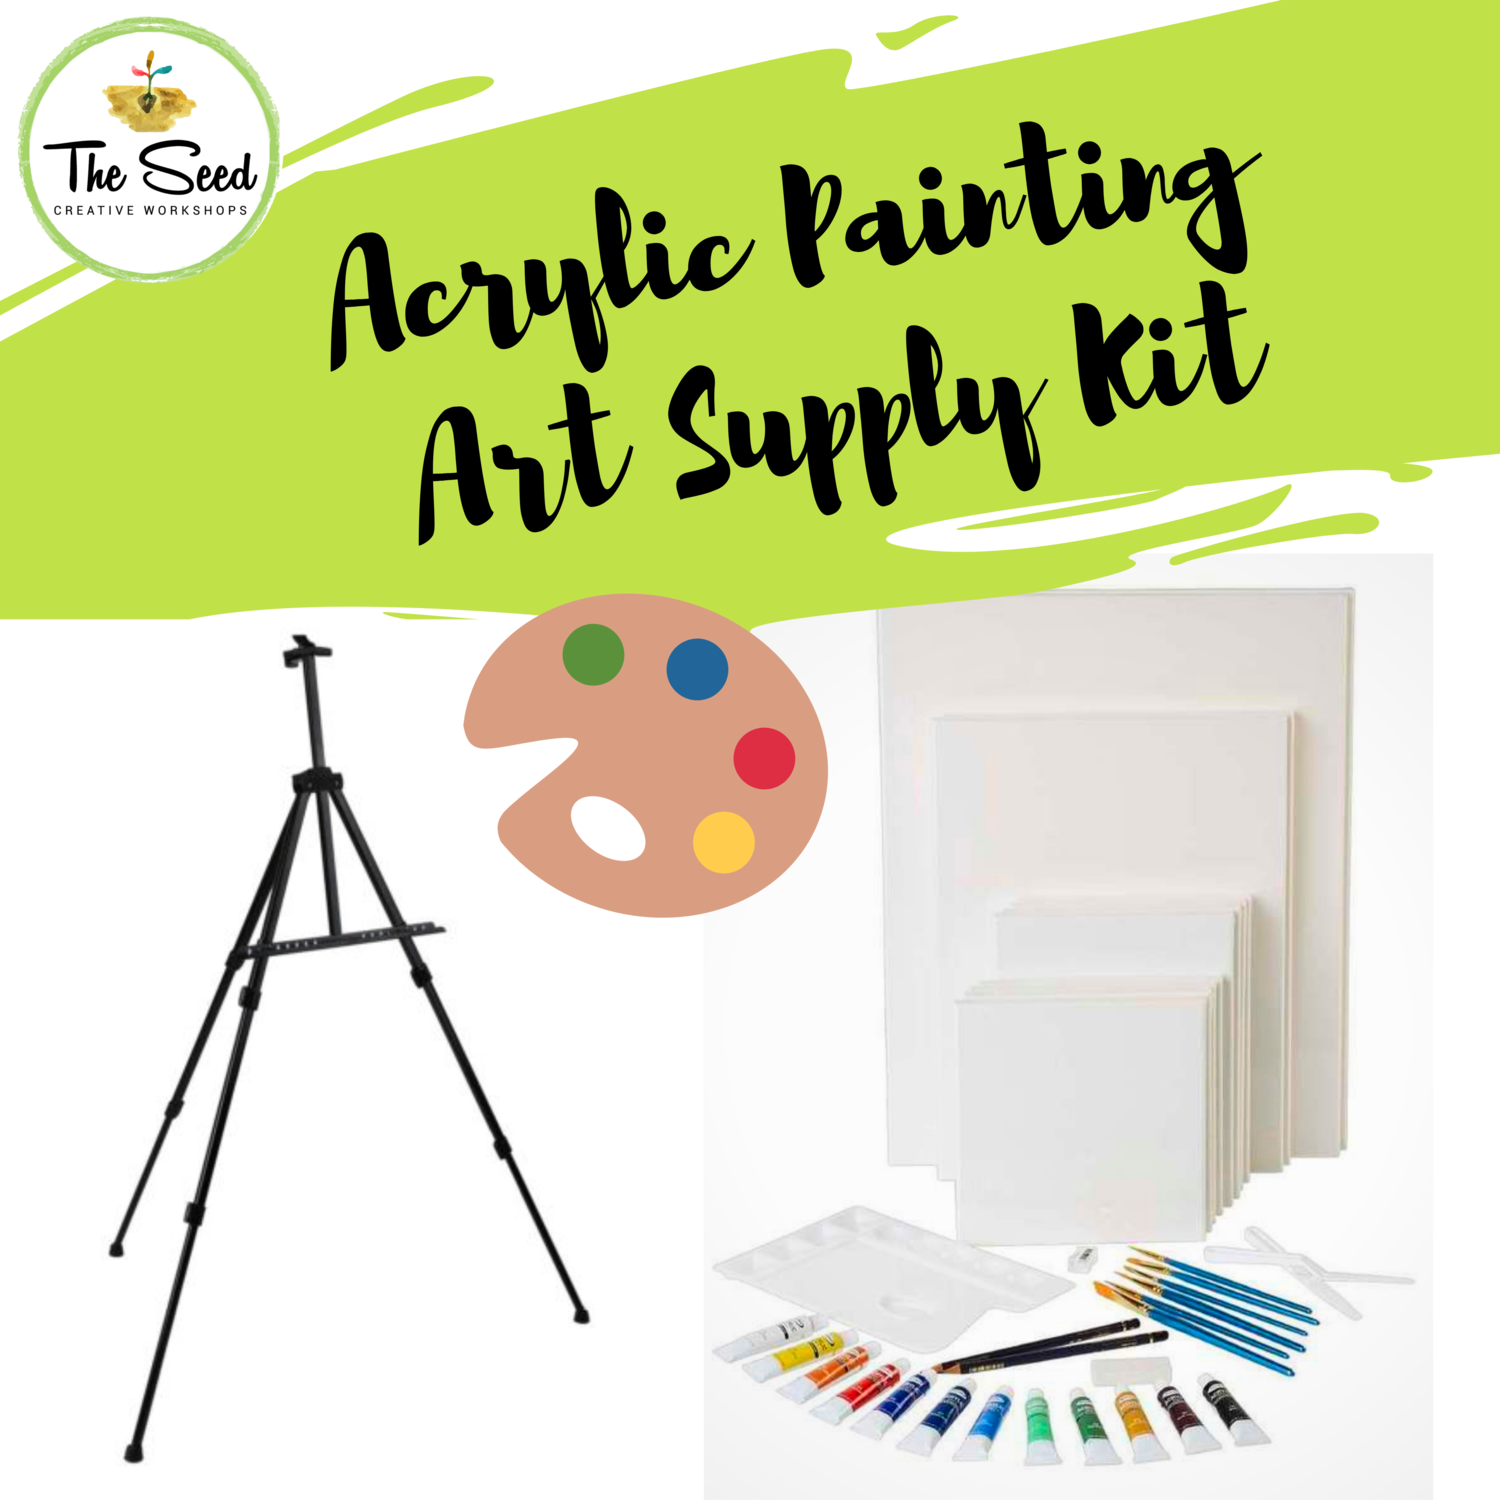 Acrylic painting Art Supply Kit with portable easel